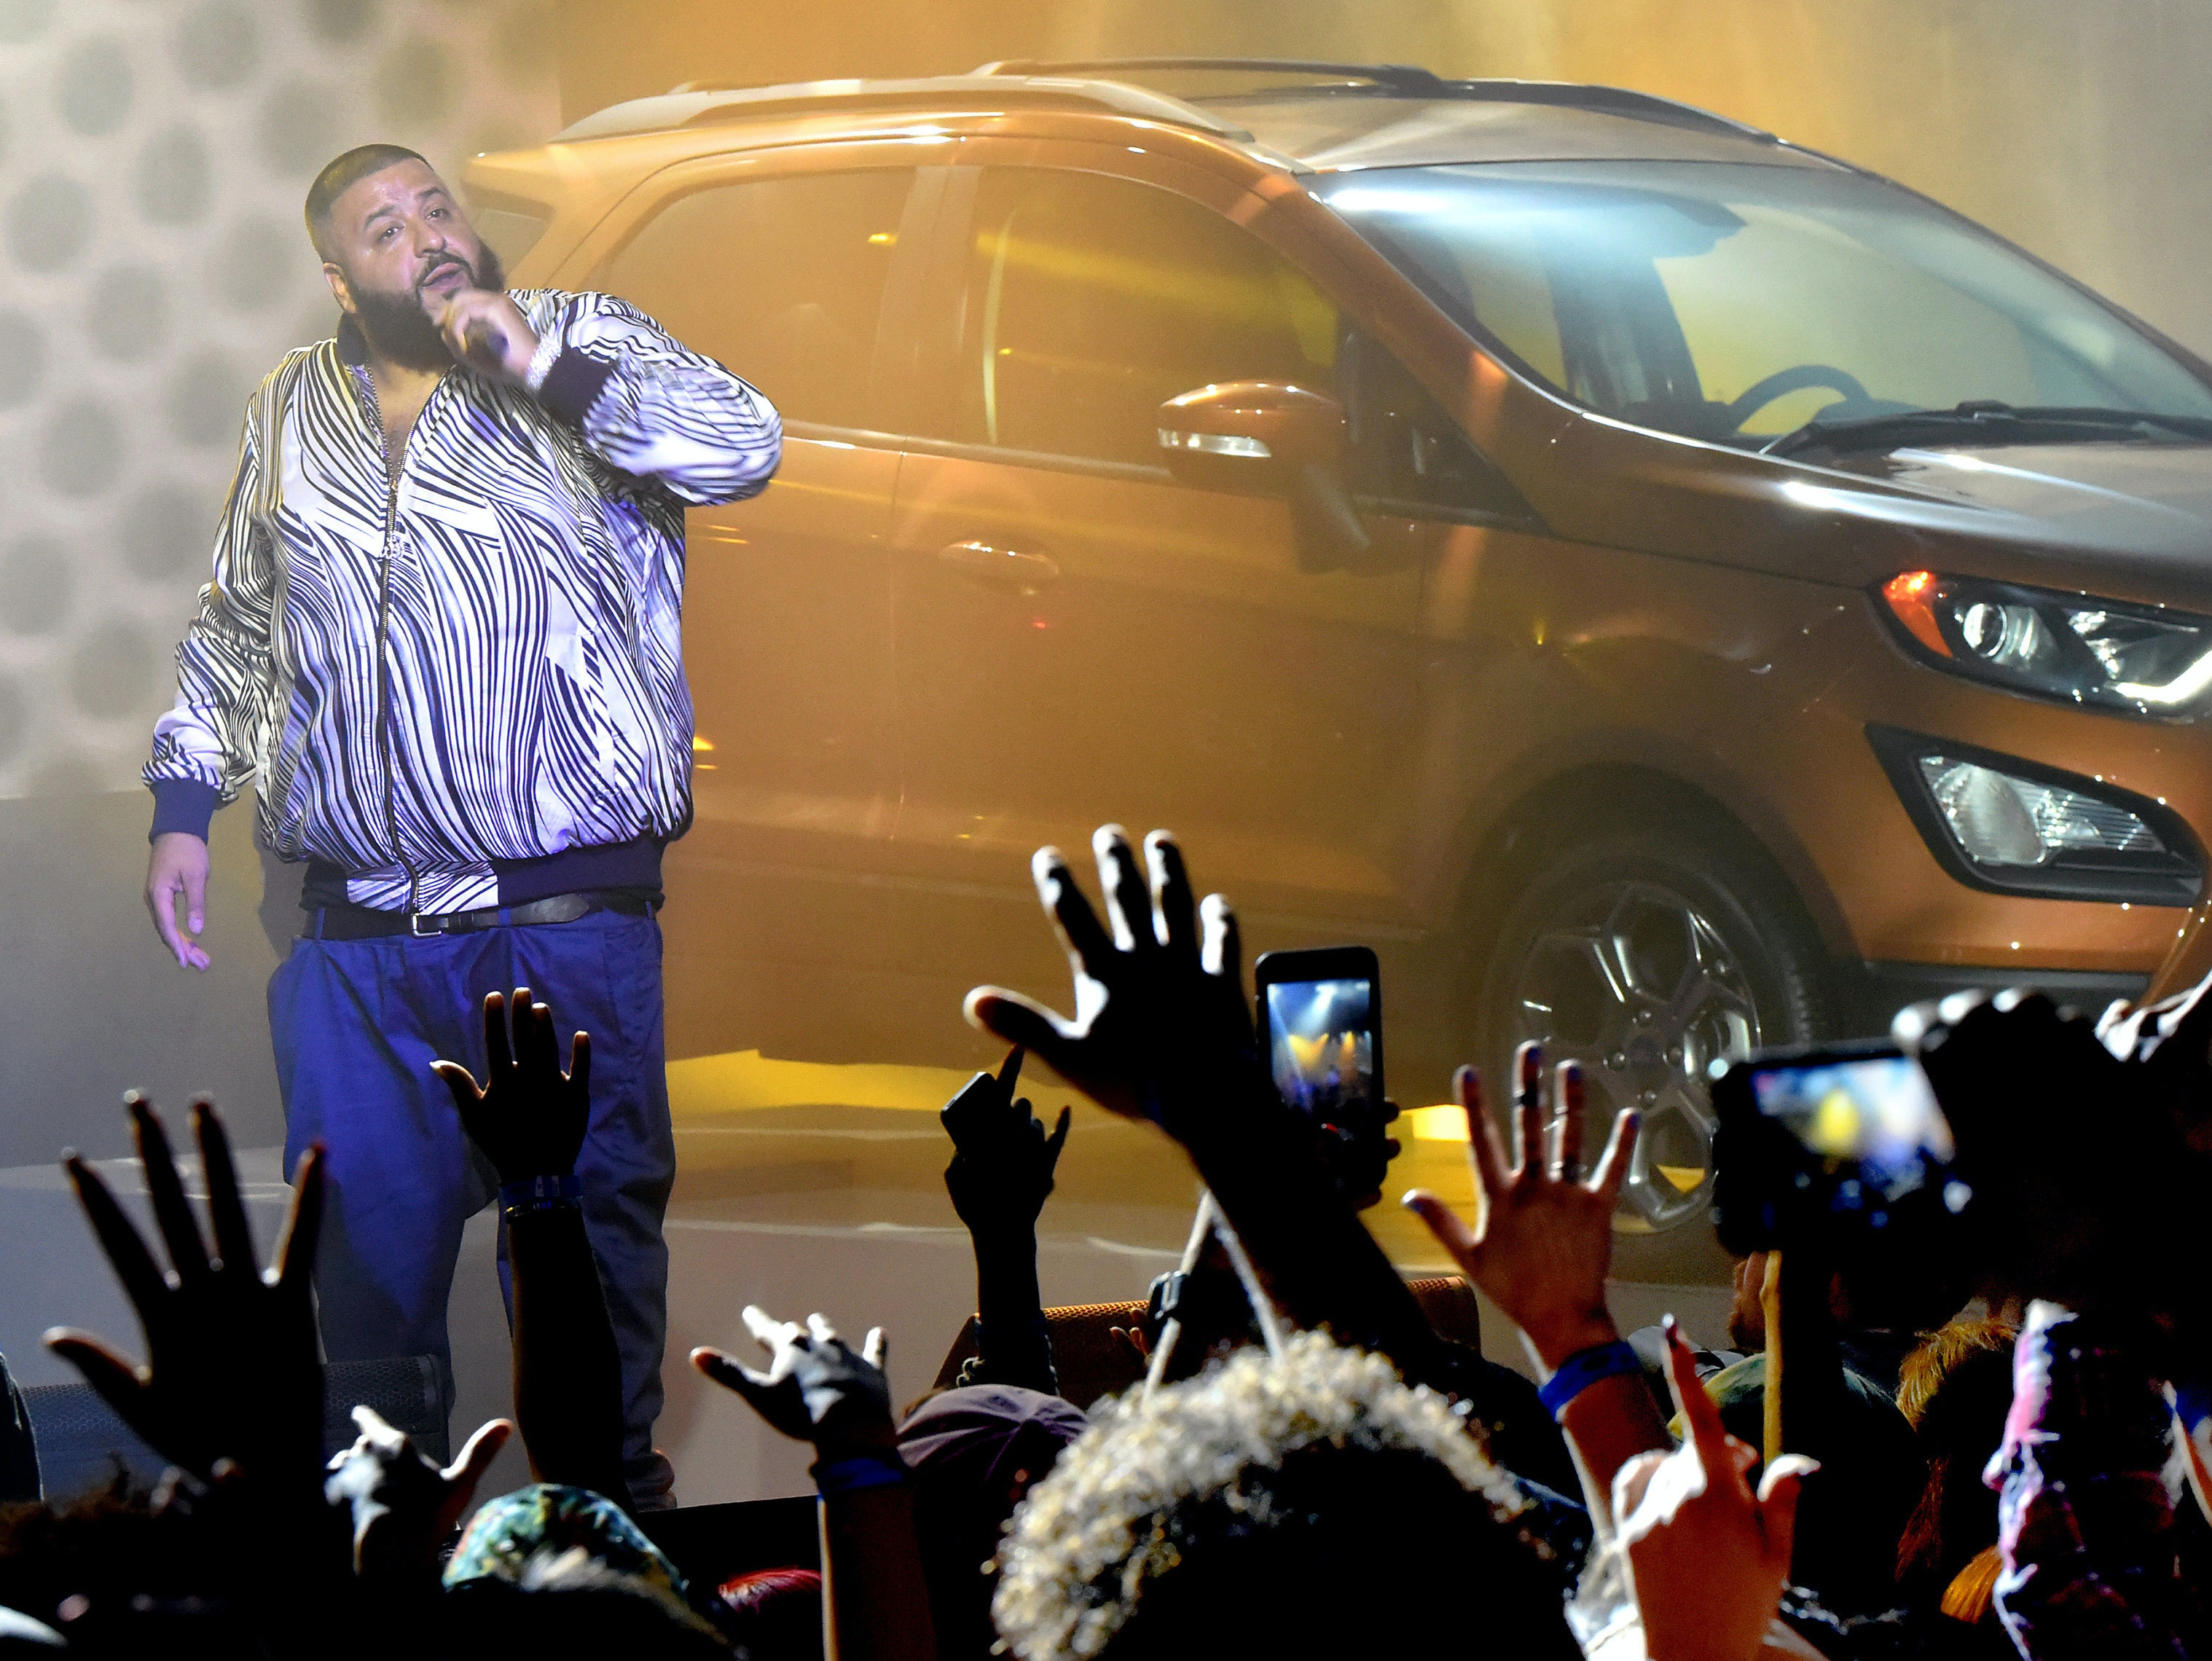 Ford Debuts Its EcoSport SUV on Snapchat with DJ Khaled